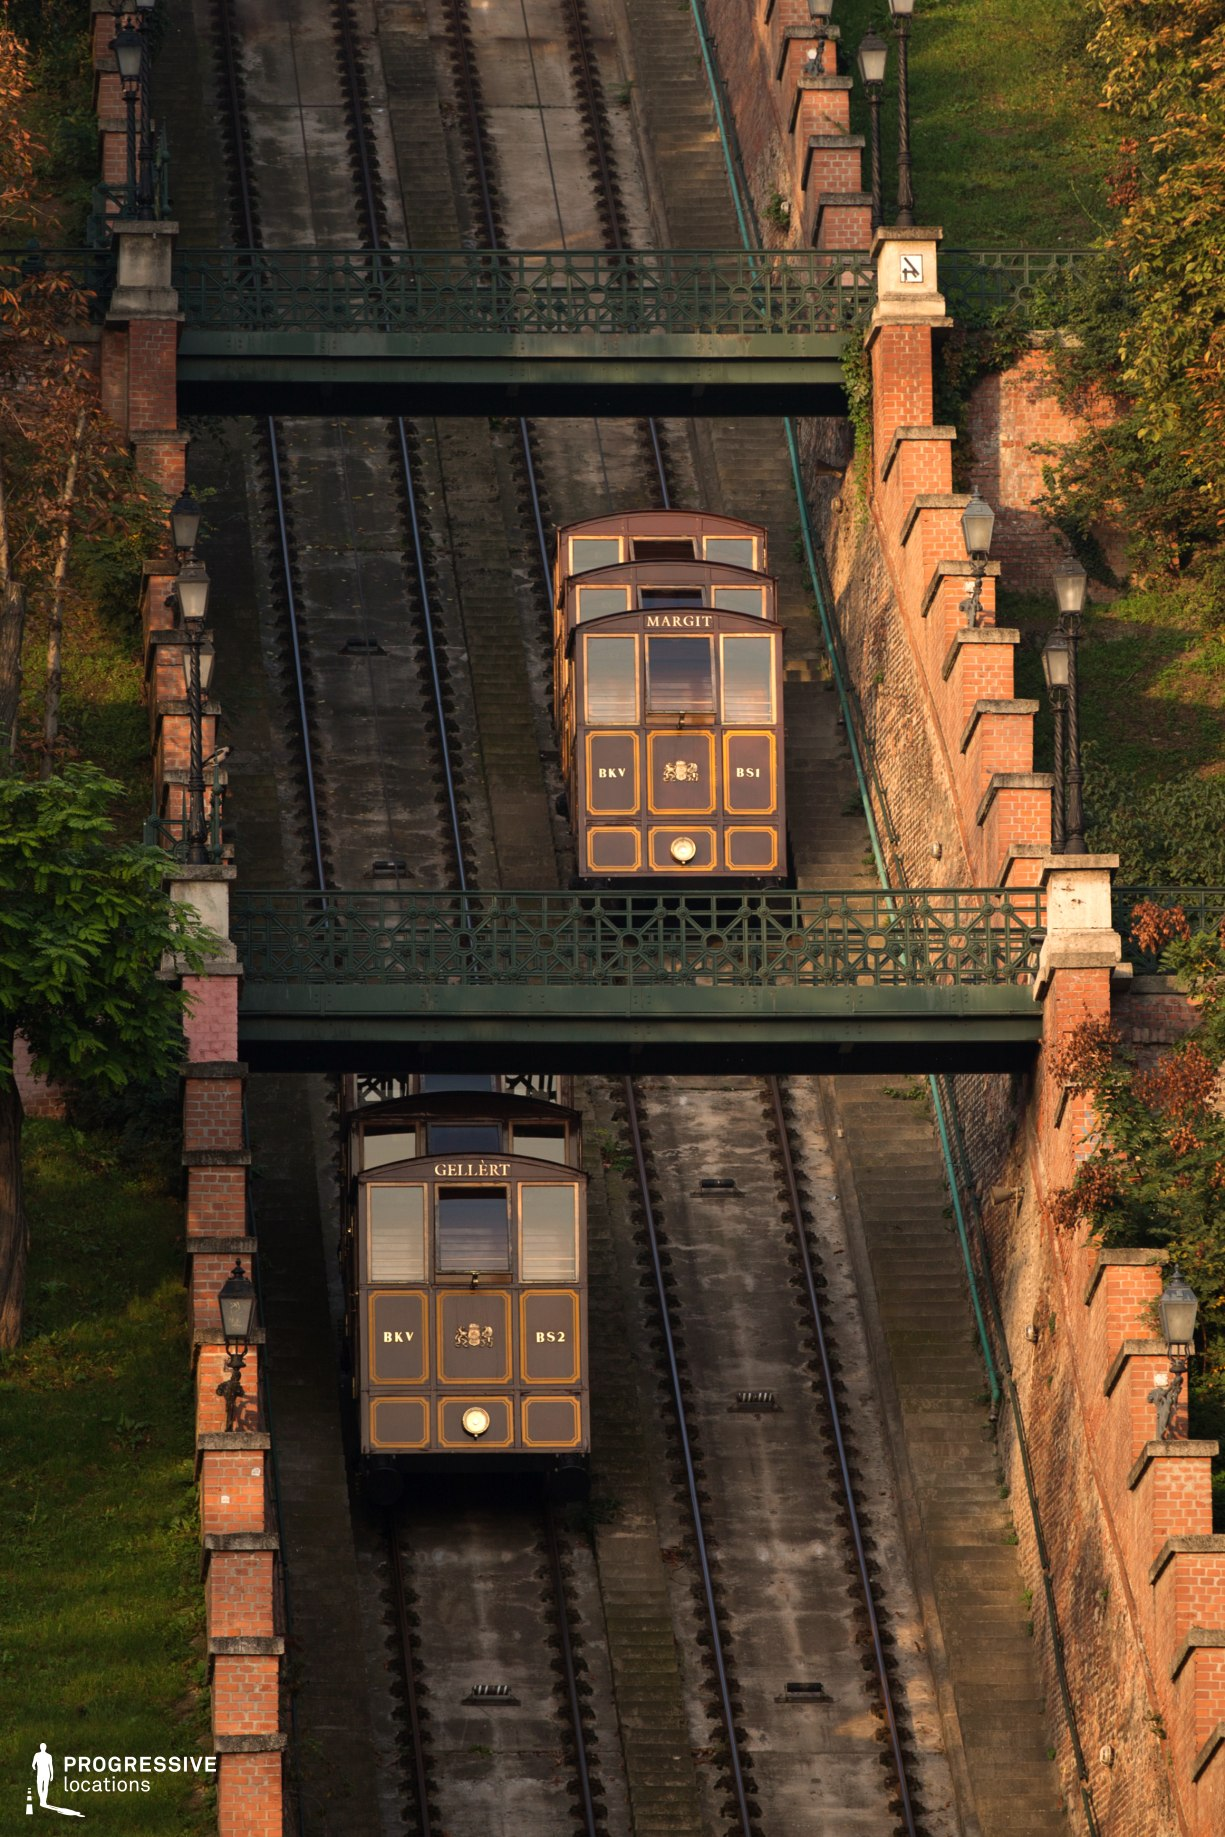 Locations in Budapest: Funicular, Buda Castle Hill